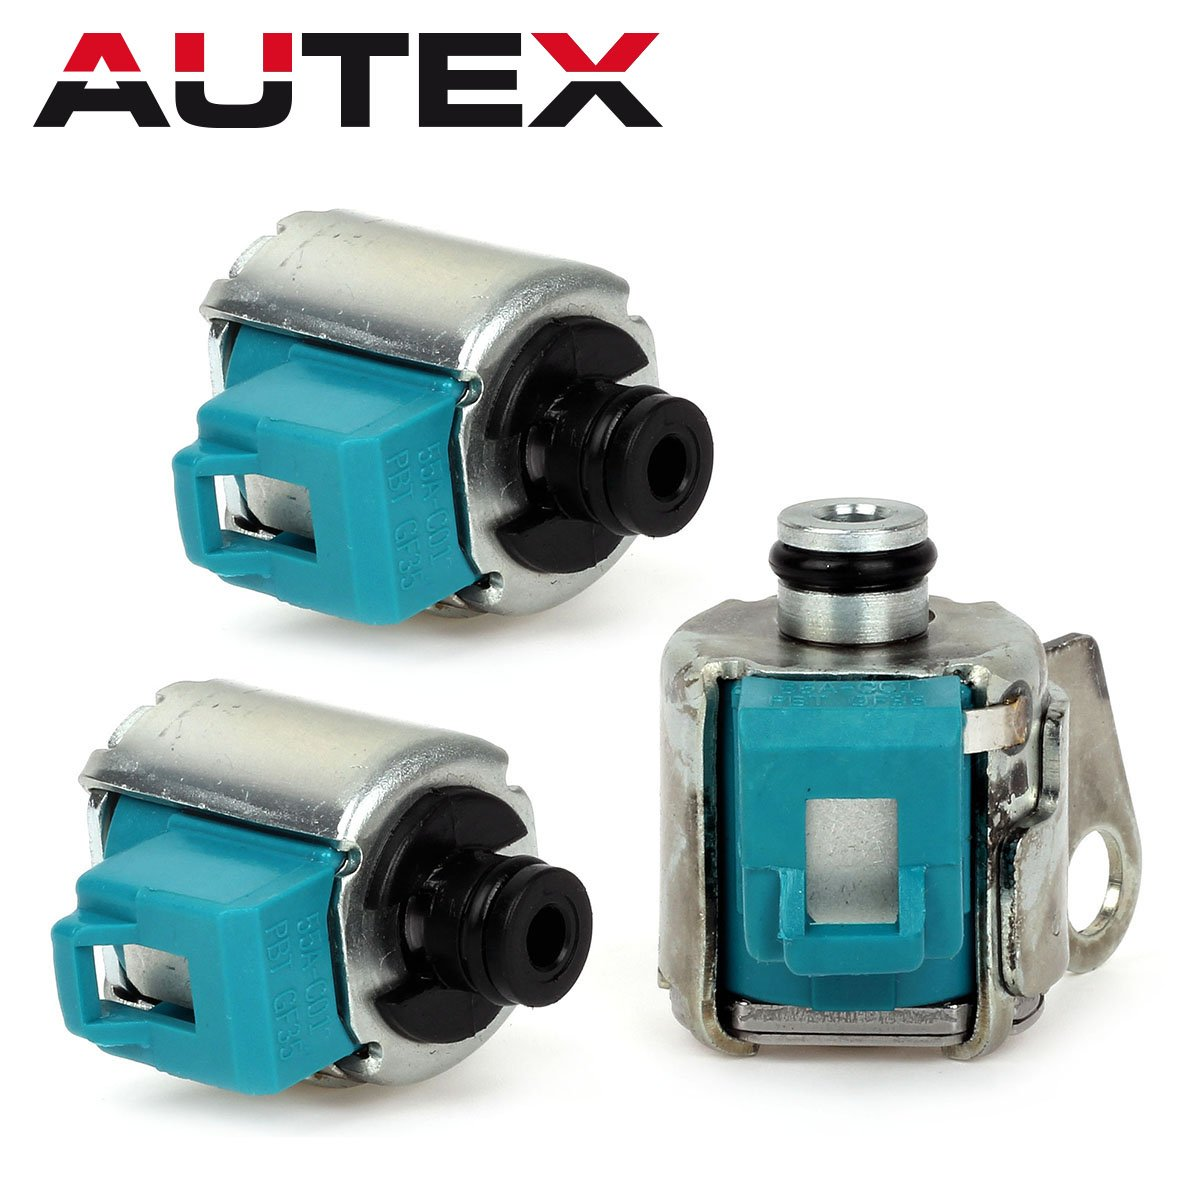 AUTEX A340E A340F AW4 Shift TCC Lock Up Soleniod Set Replacements For on